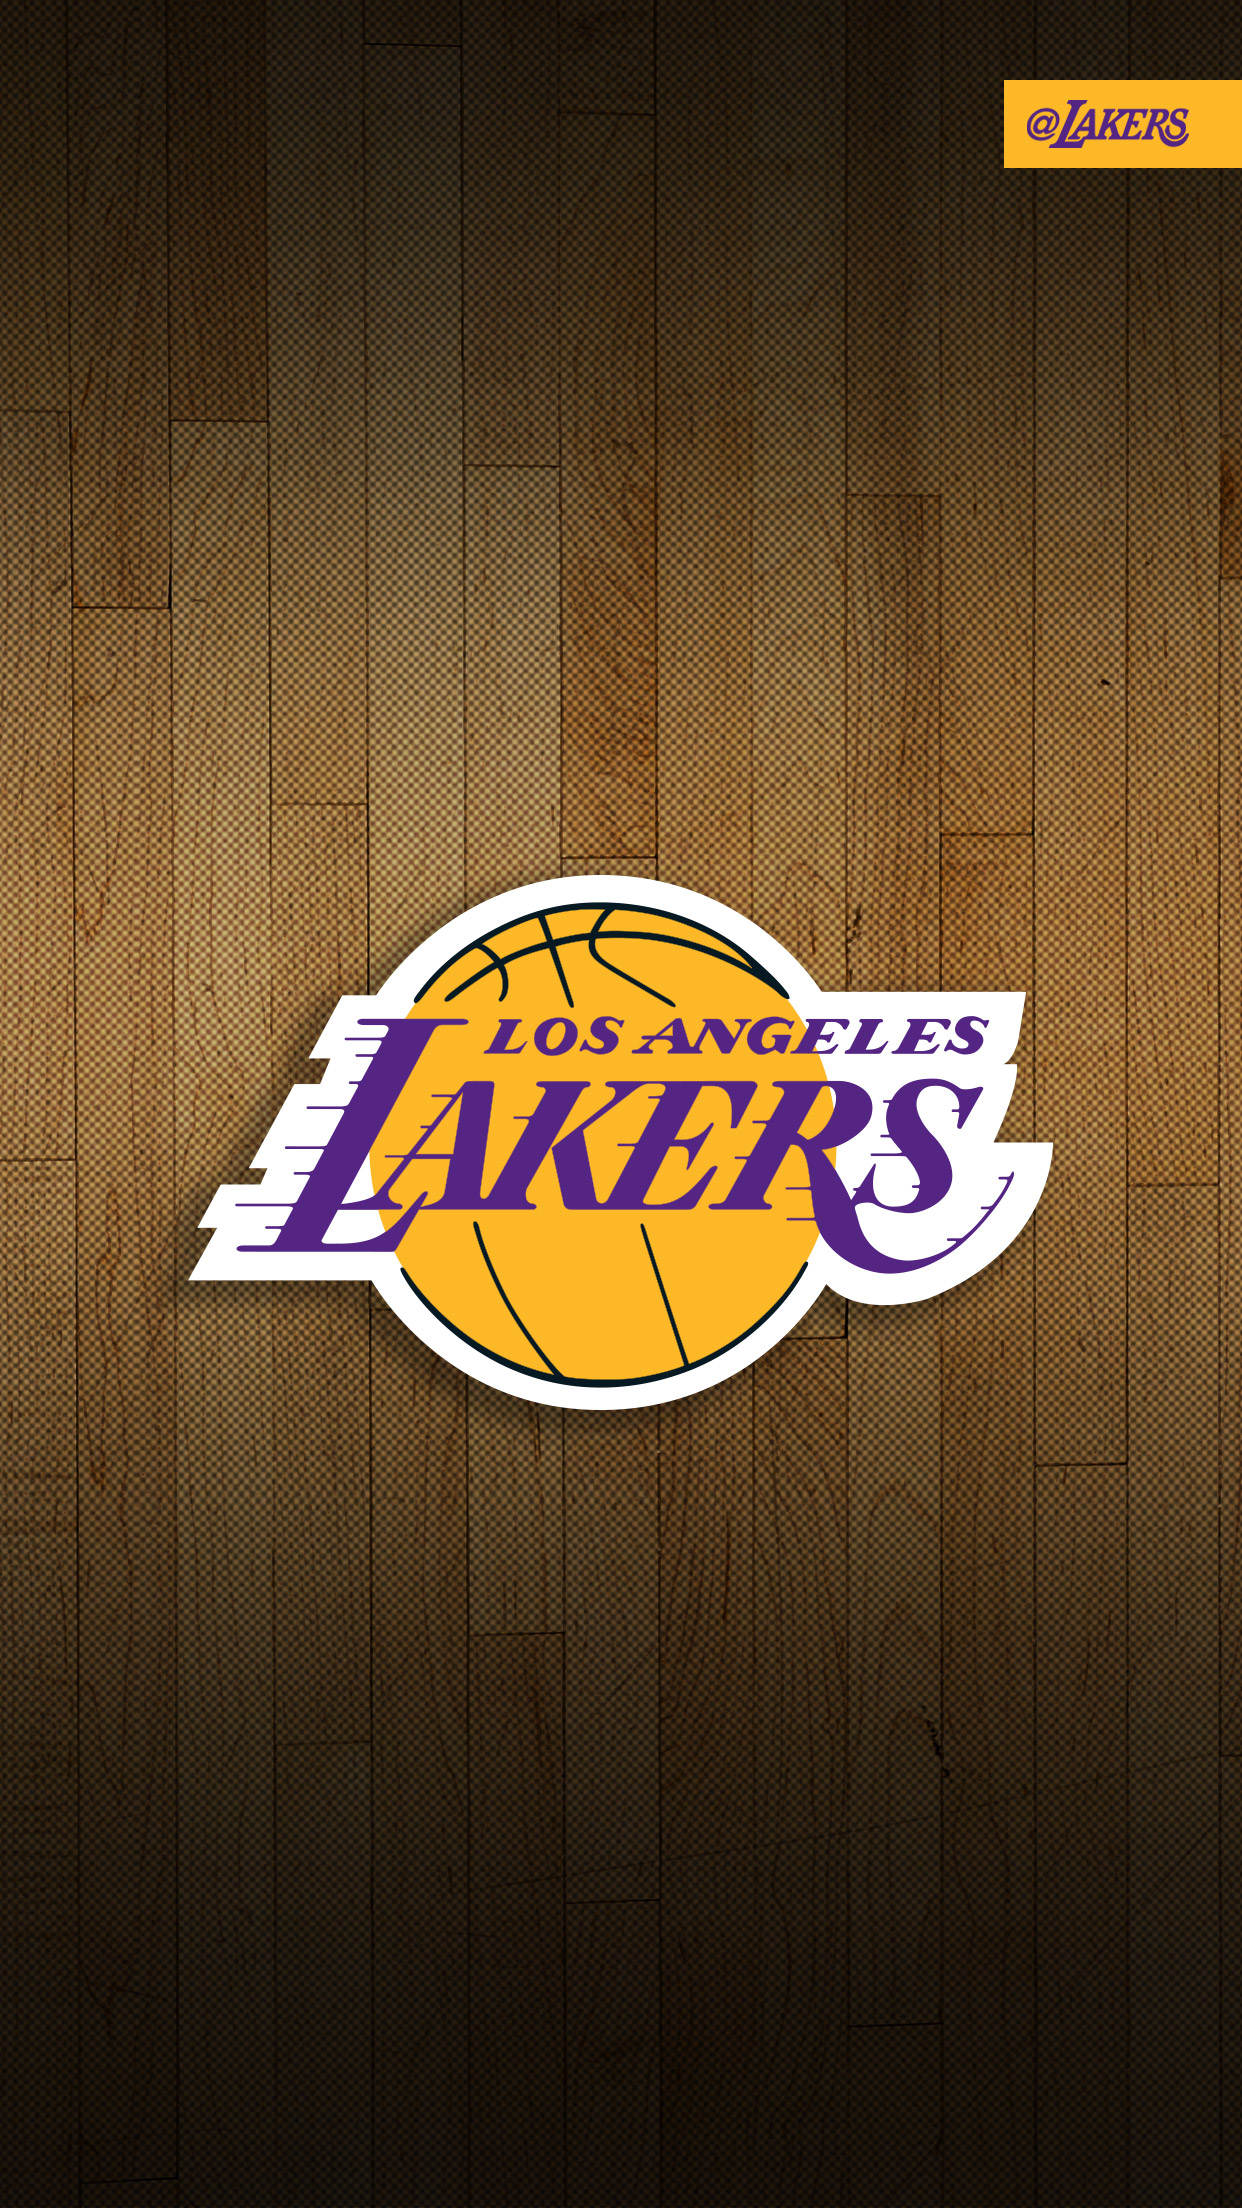 wallpaper hd iphone basketball lakers free download